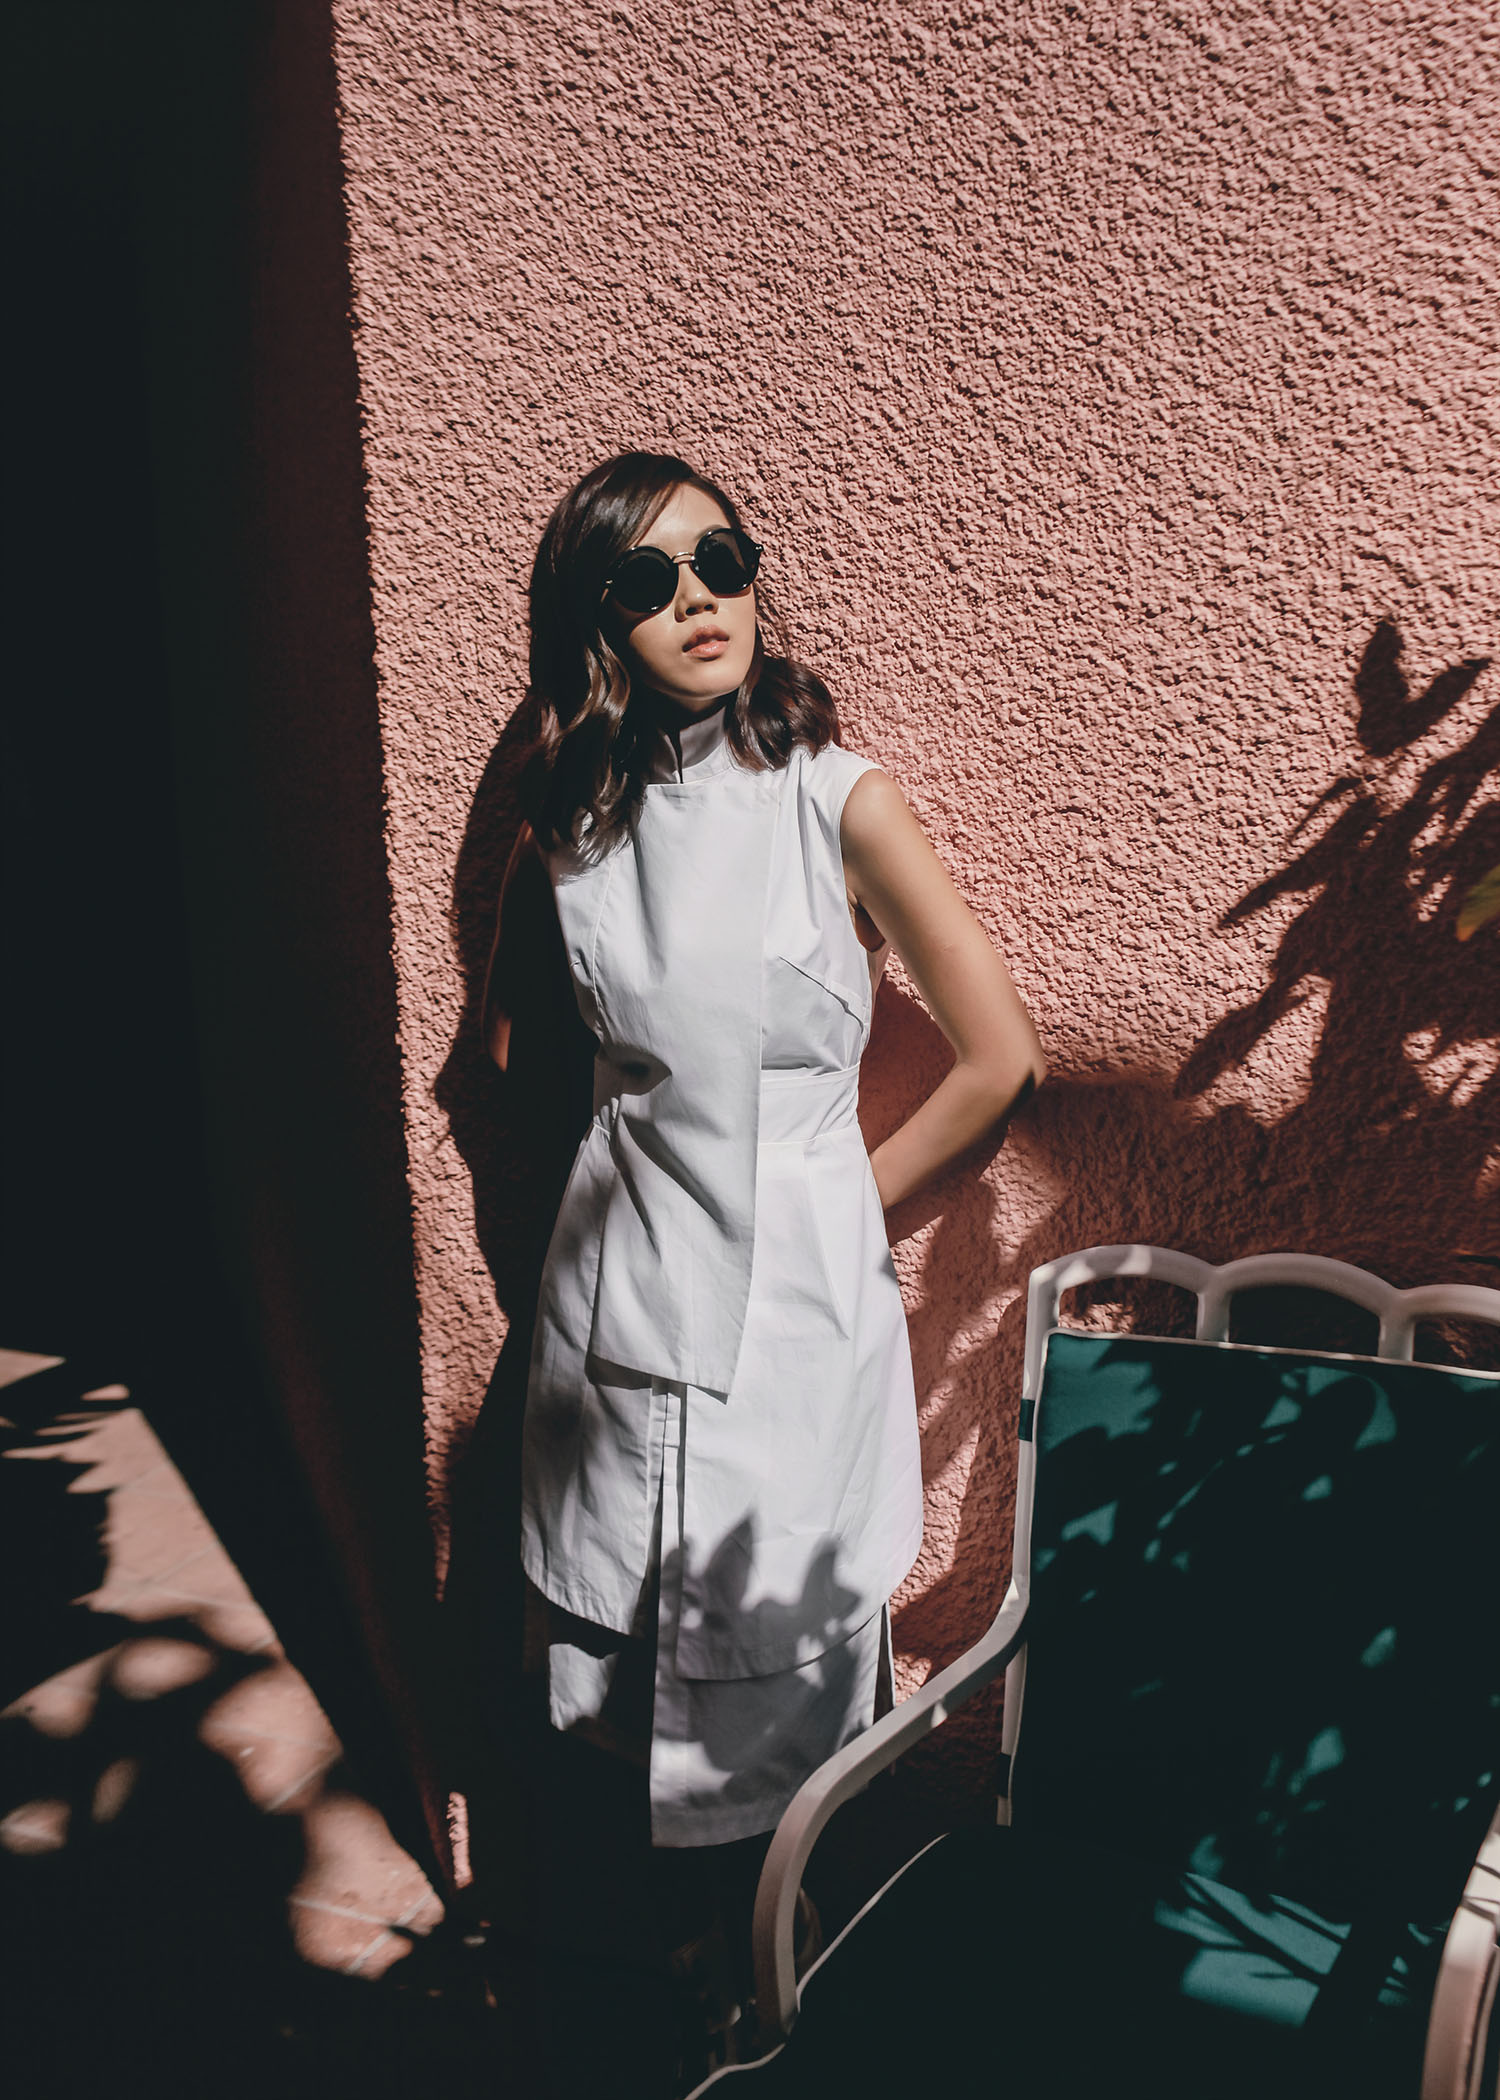 Street style fashion blogger influencer Jenny Tsang of Tsangtastic wearing ACLER Shirt Dress, GUCCI Round Sunglasses, ELLERY zipped platform ankle boots, in Beverly Hills Hotel, Los Angeles, California.